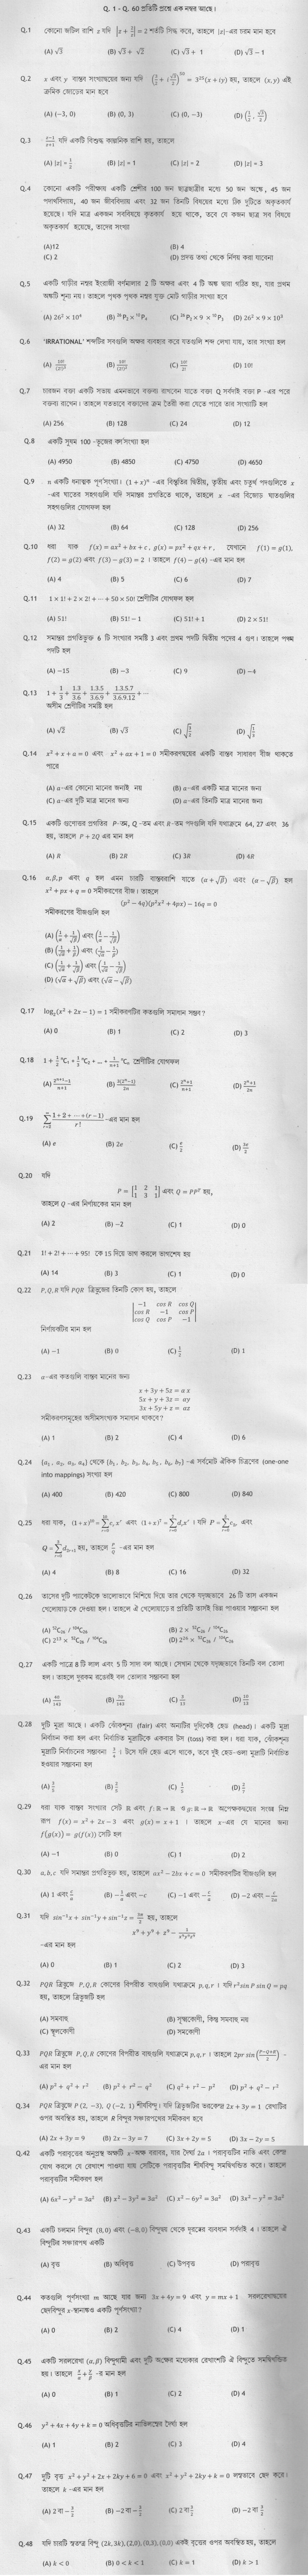 WBJEE 2012 Question Papers with Answers - Mathematics